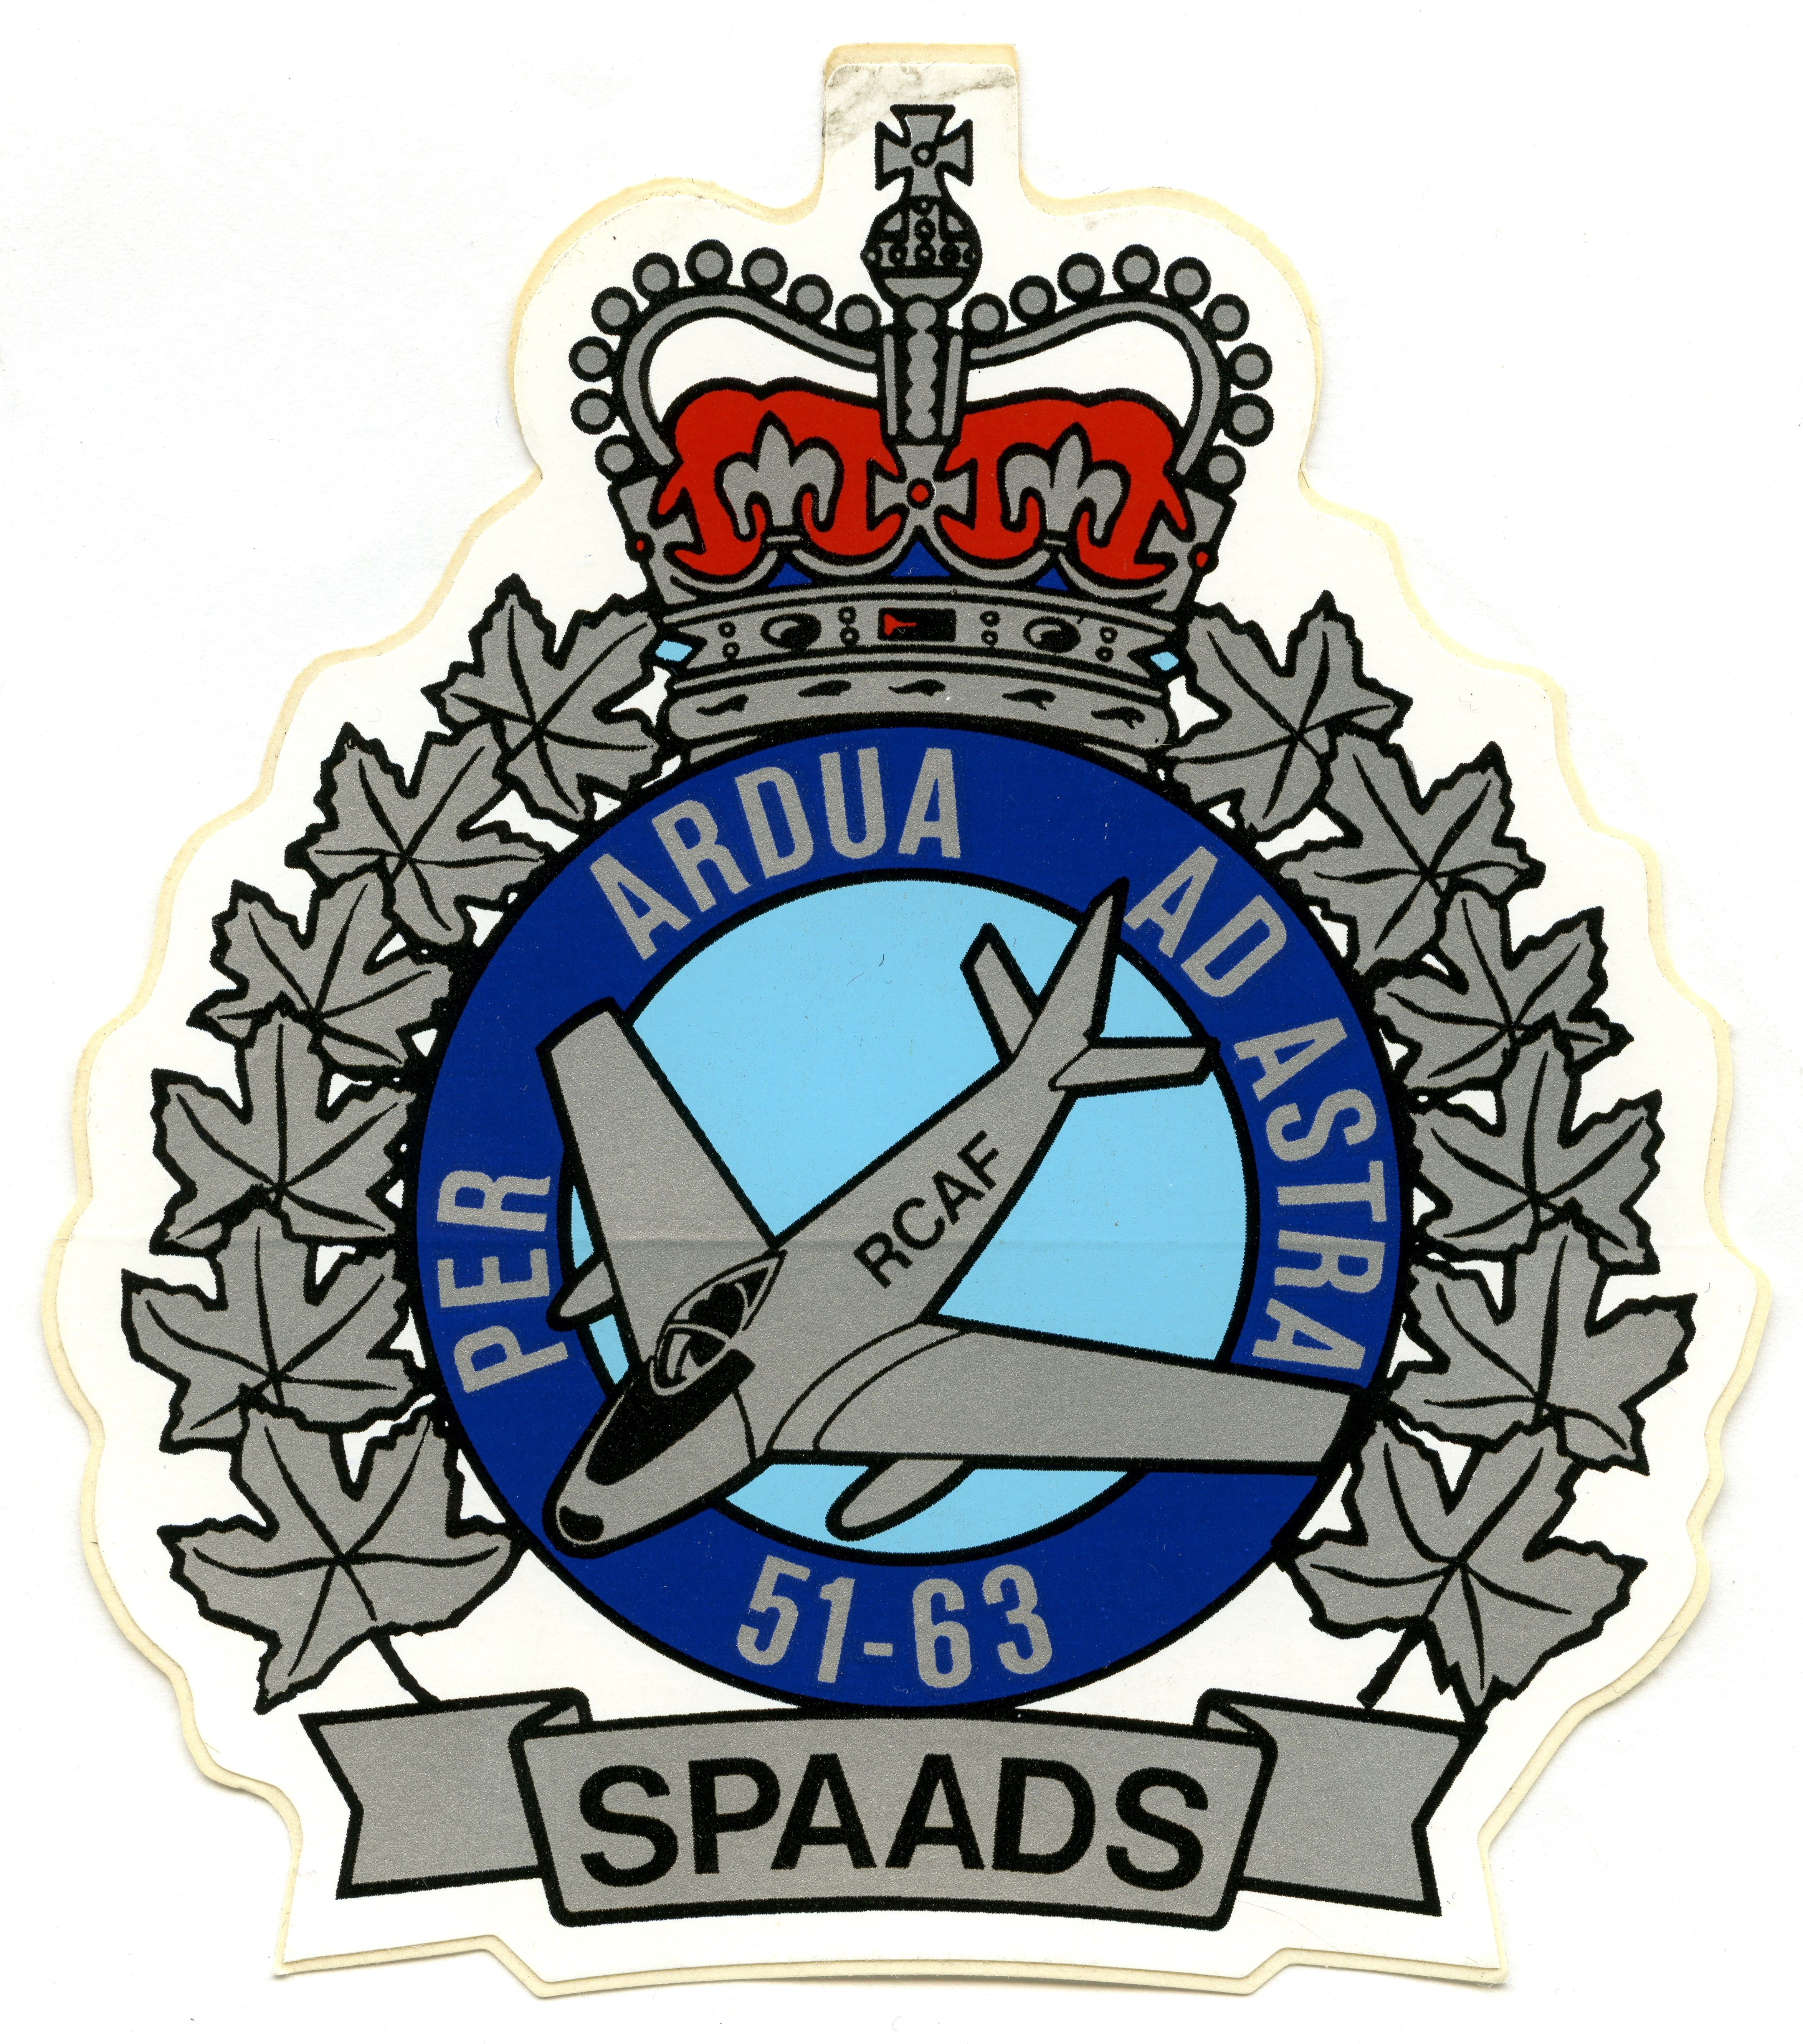 SPAADS Sabre Pilots Association of the Air Division